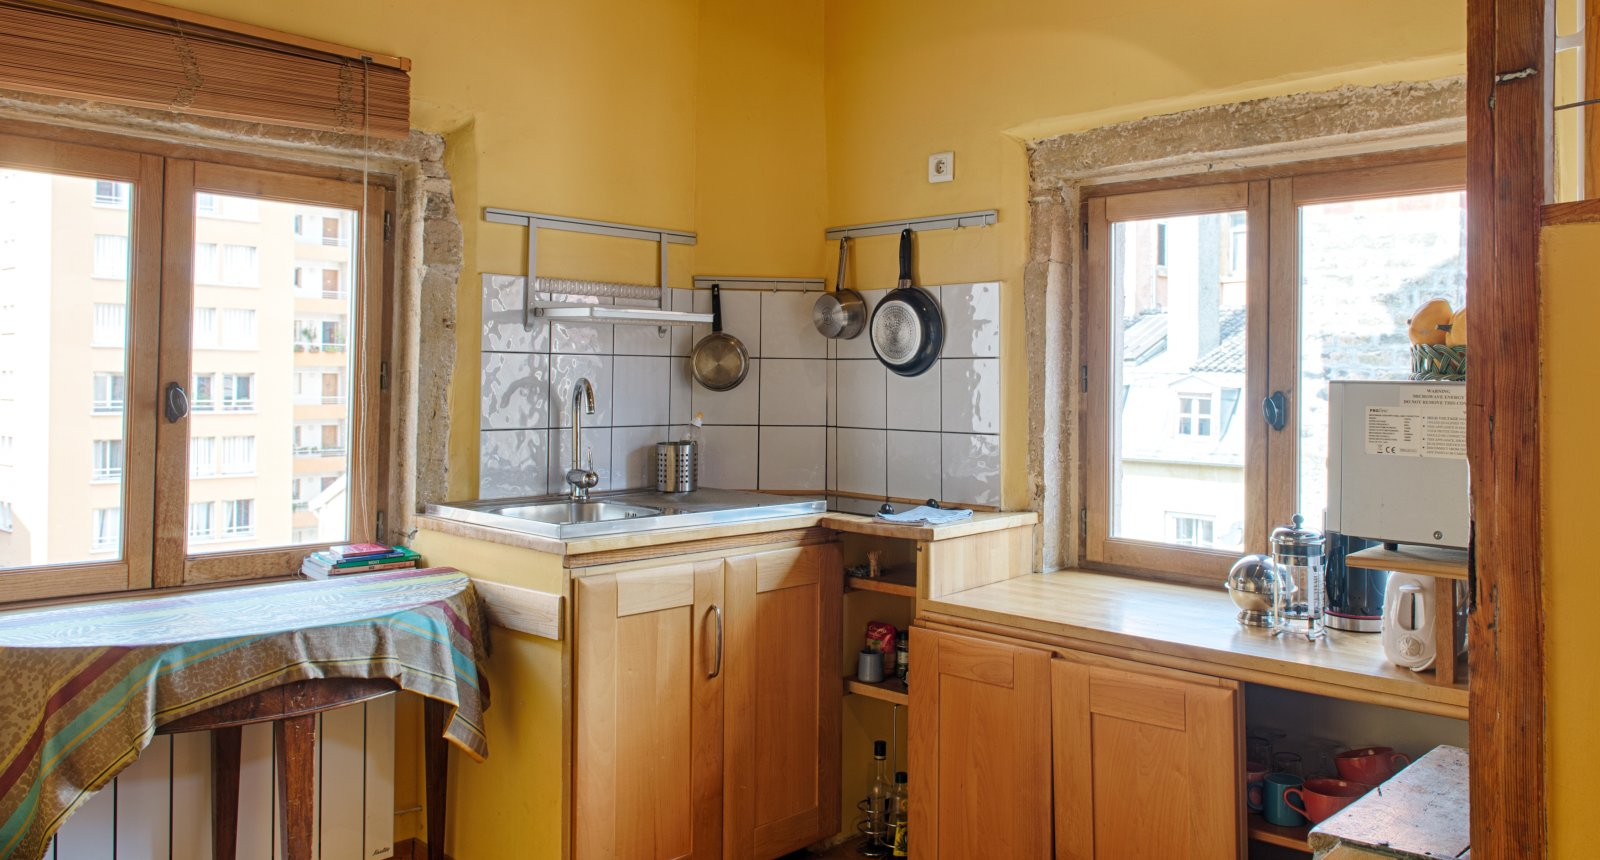 kitchen of the self-catering apartment